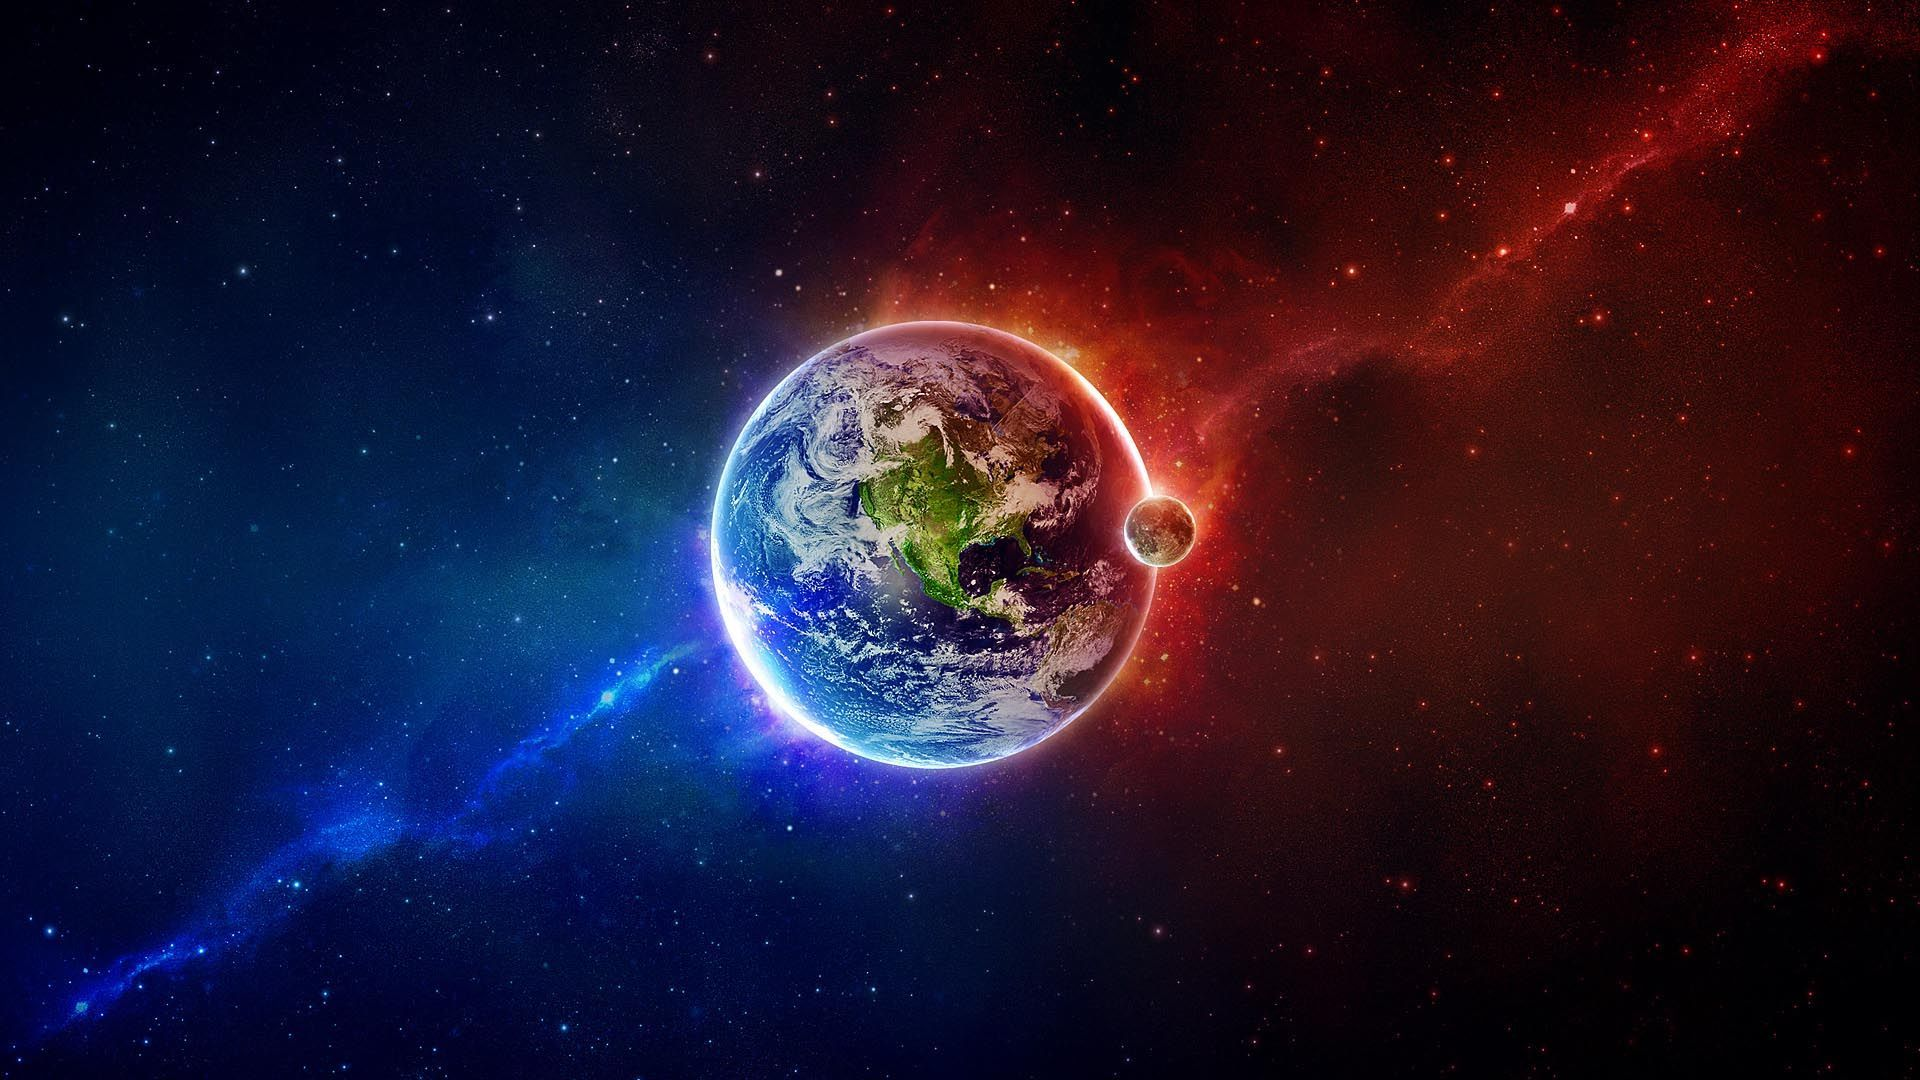 1920x1080 blue with red   Outer Space Earth Moon Red Blue HD Wallpaper ...